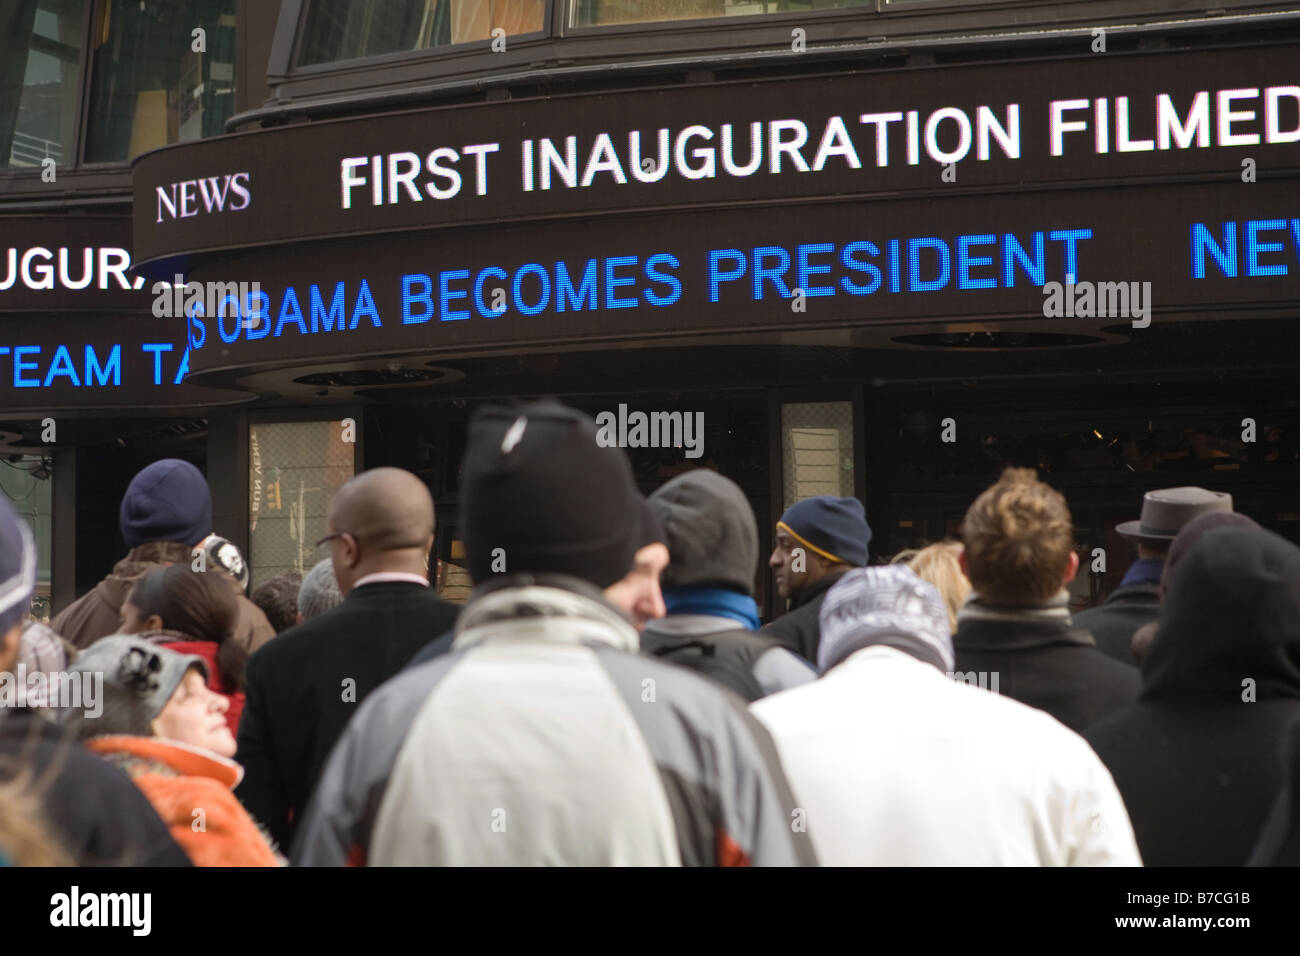 Obama Inauguration 2009, Times Square, NYC - Stock Image